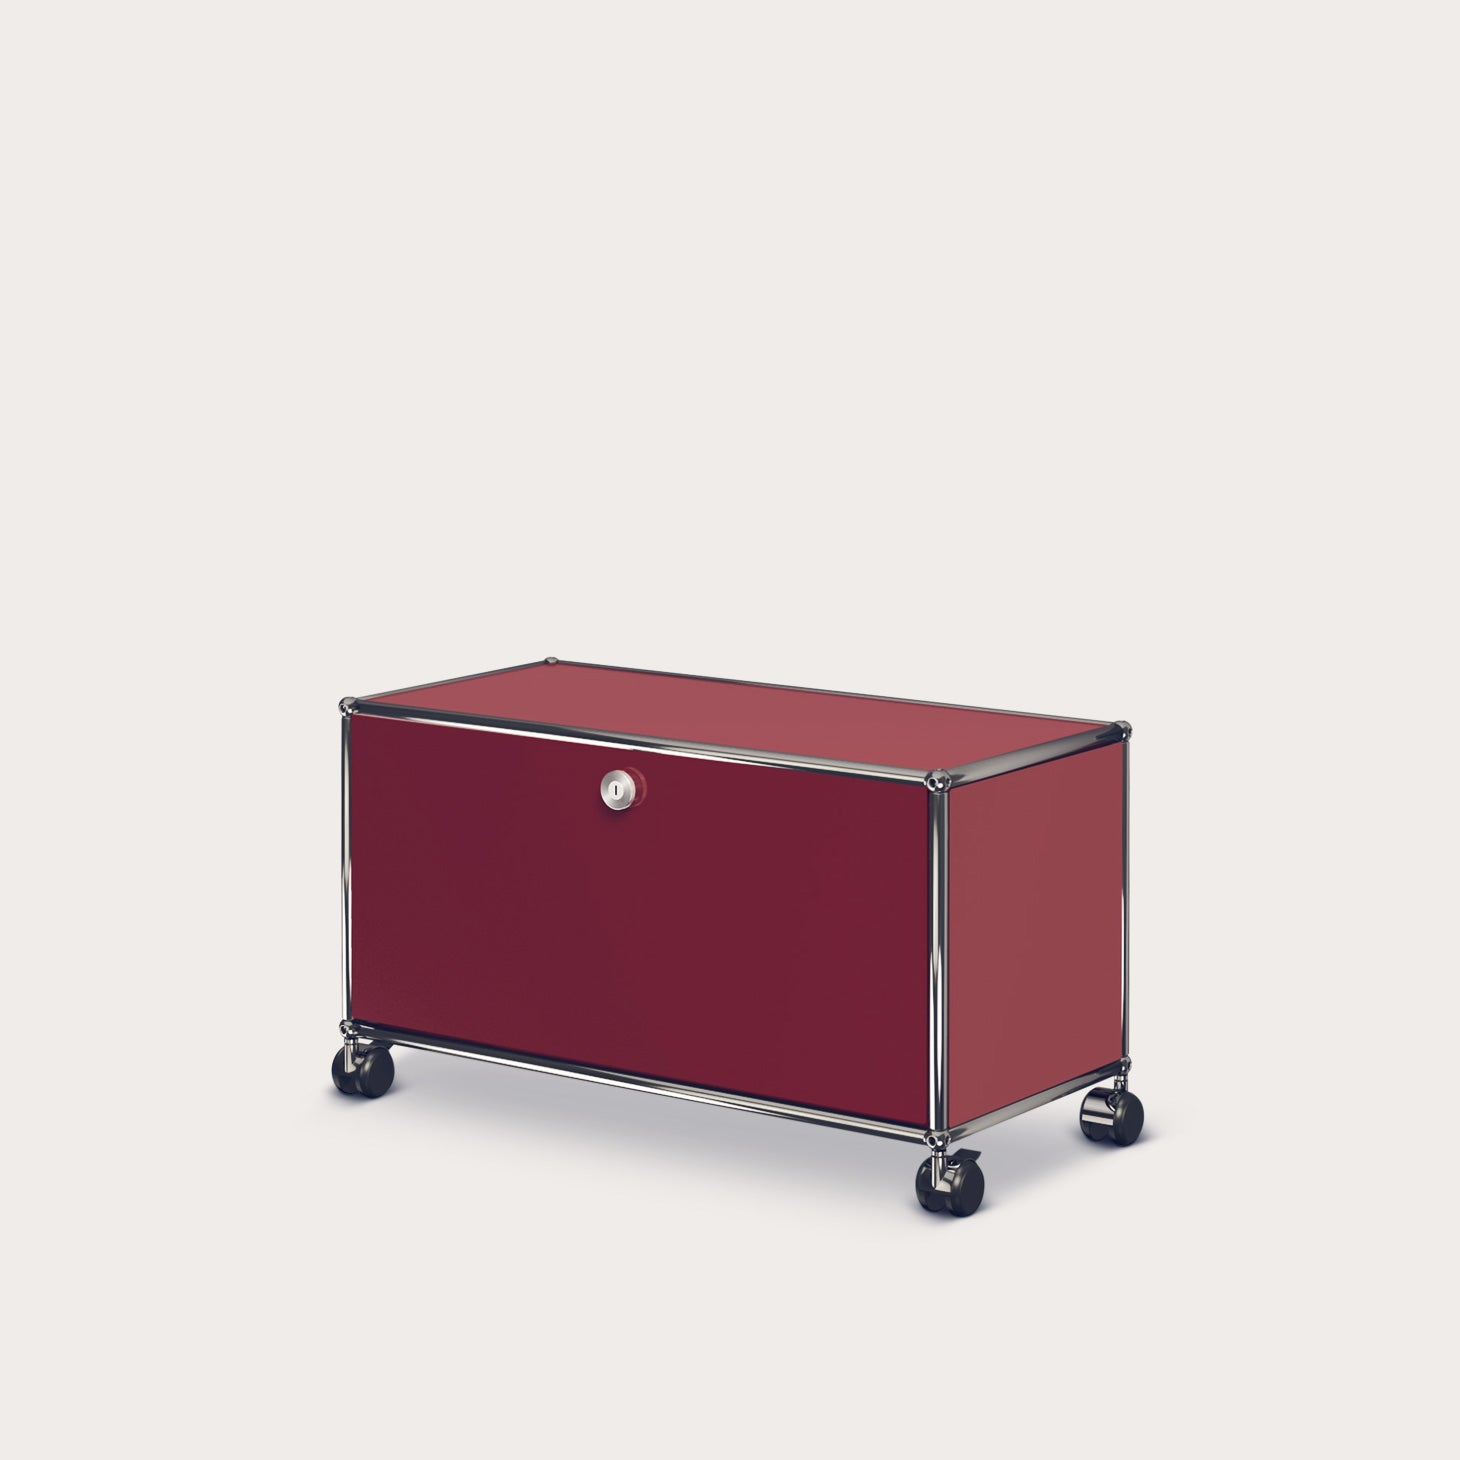 Haller Media B1 Storage Fritz Haller Designer Furniture Sku: 000-180-20012